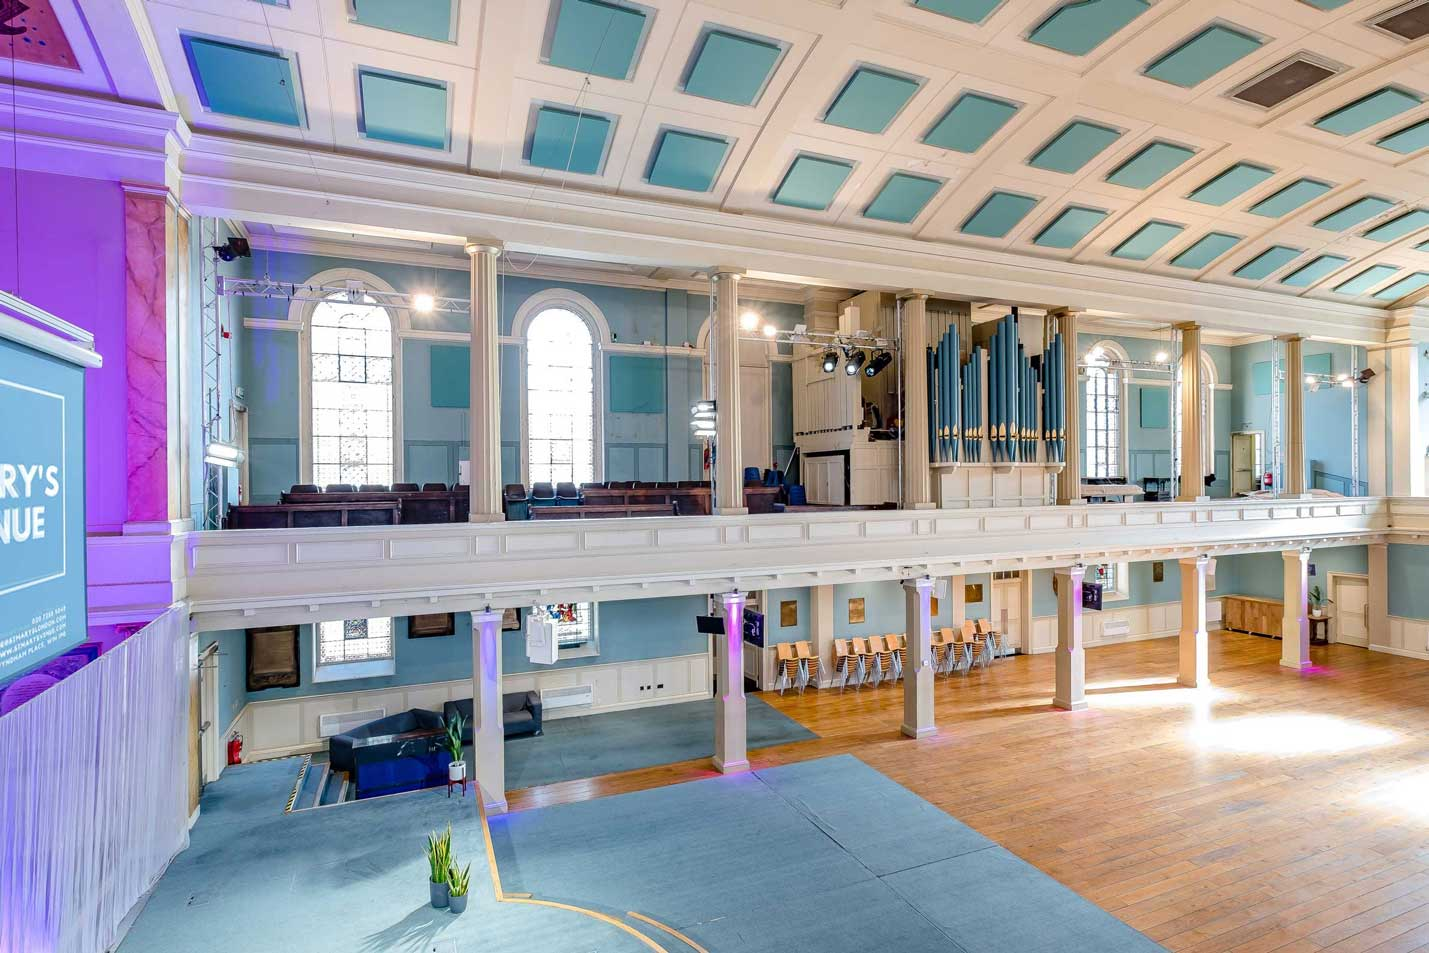 image of the main auditorium at St Mary's Venue Hire with balcony seating, organ, projector and stage